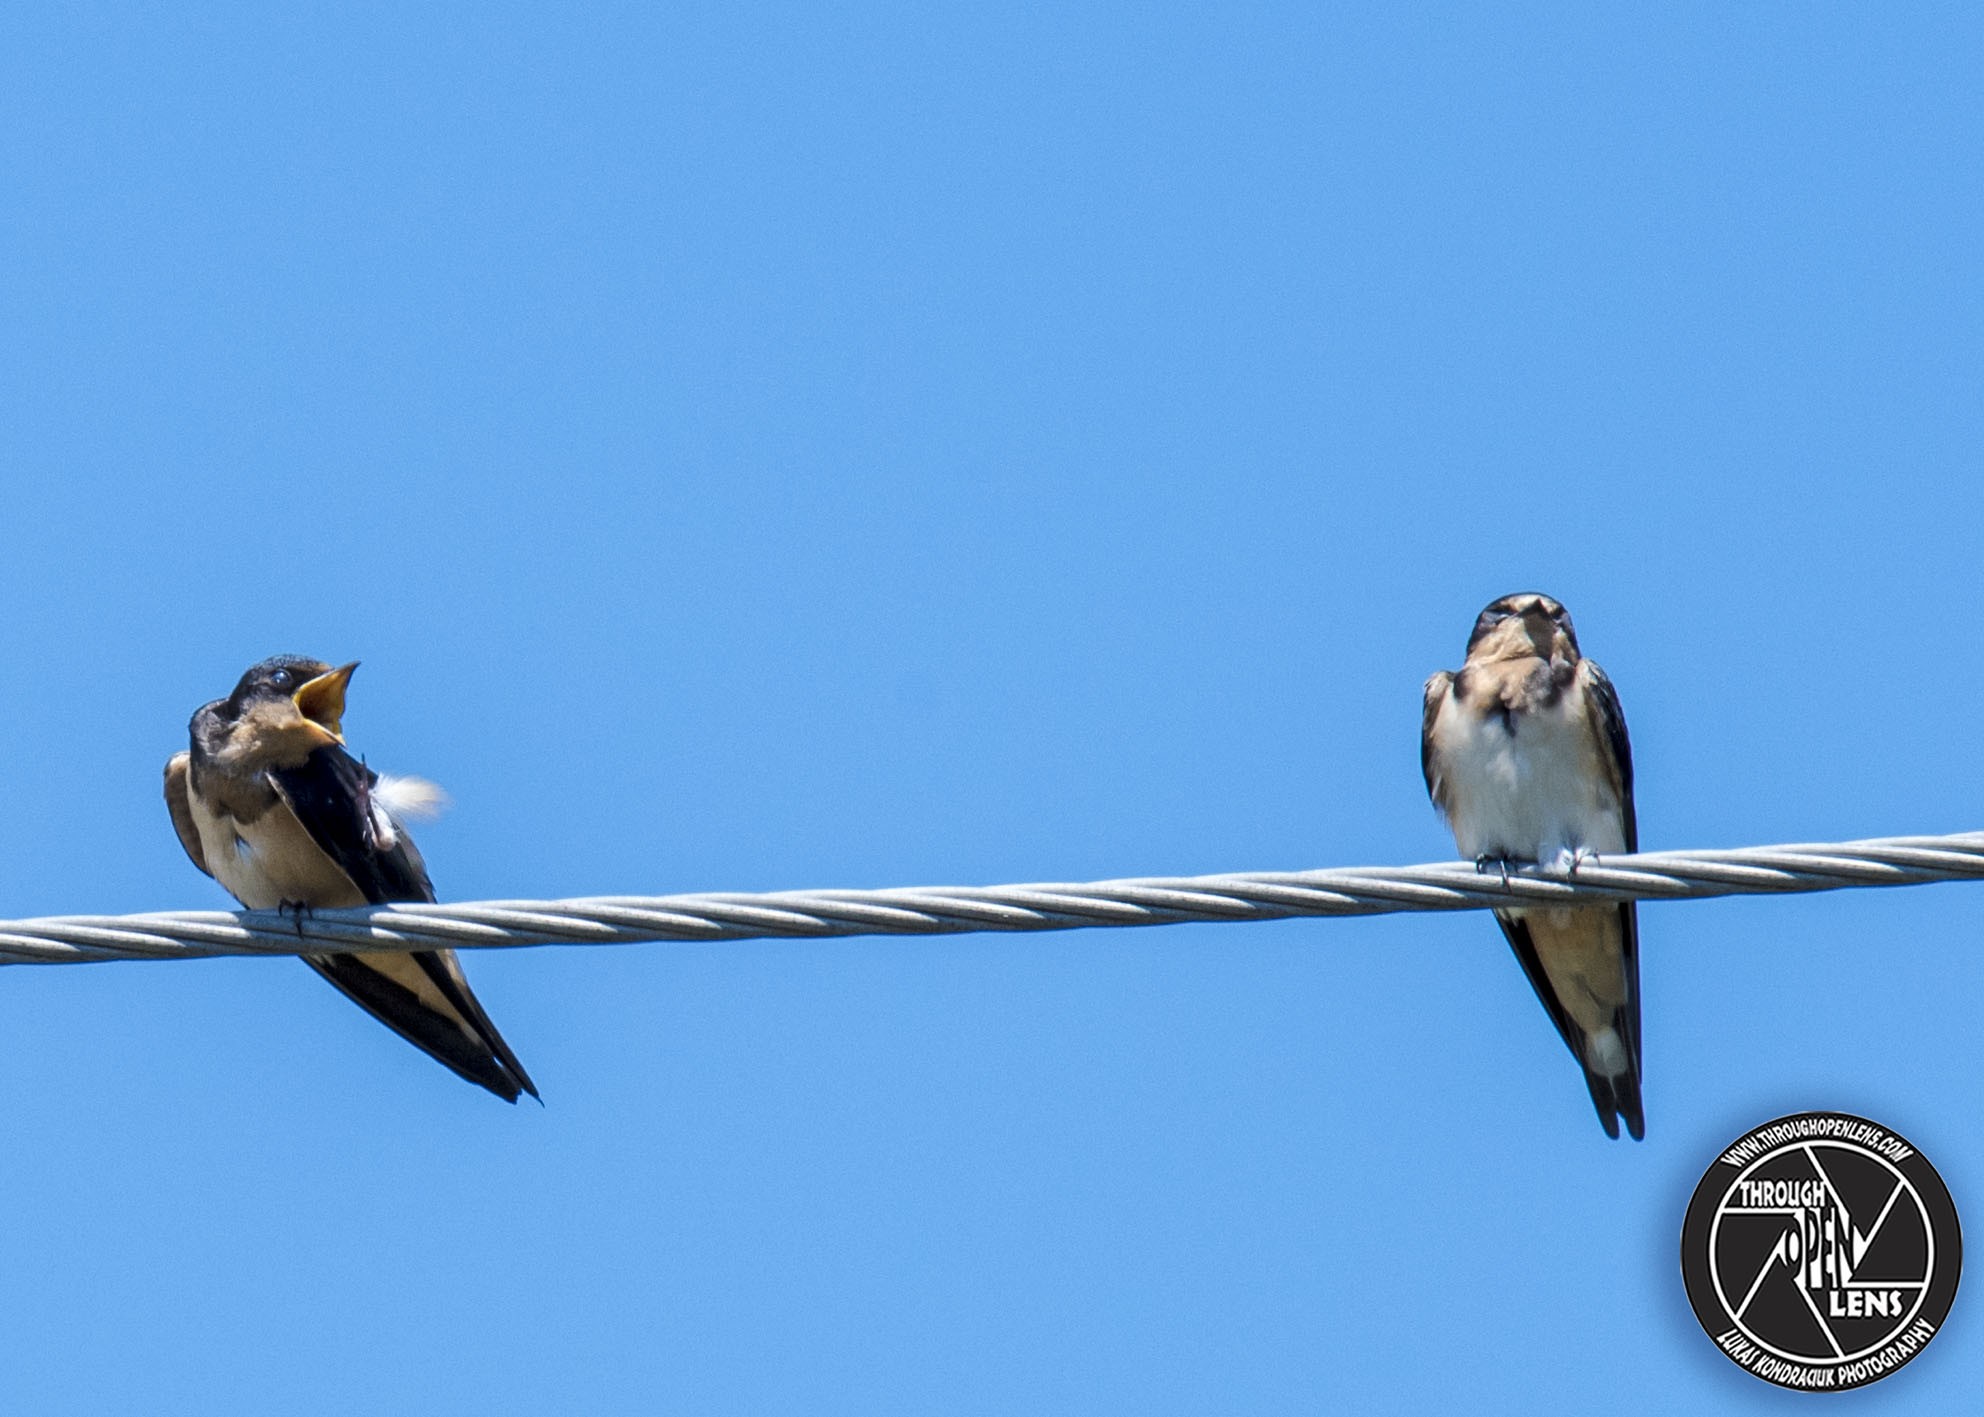 barn swallow on wire – Through Open Lens